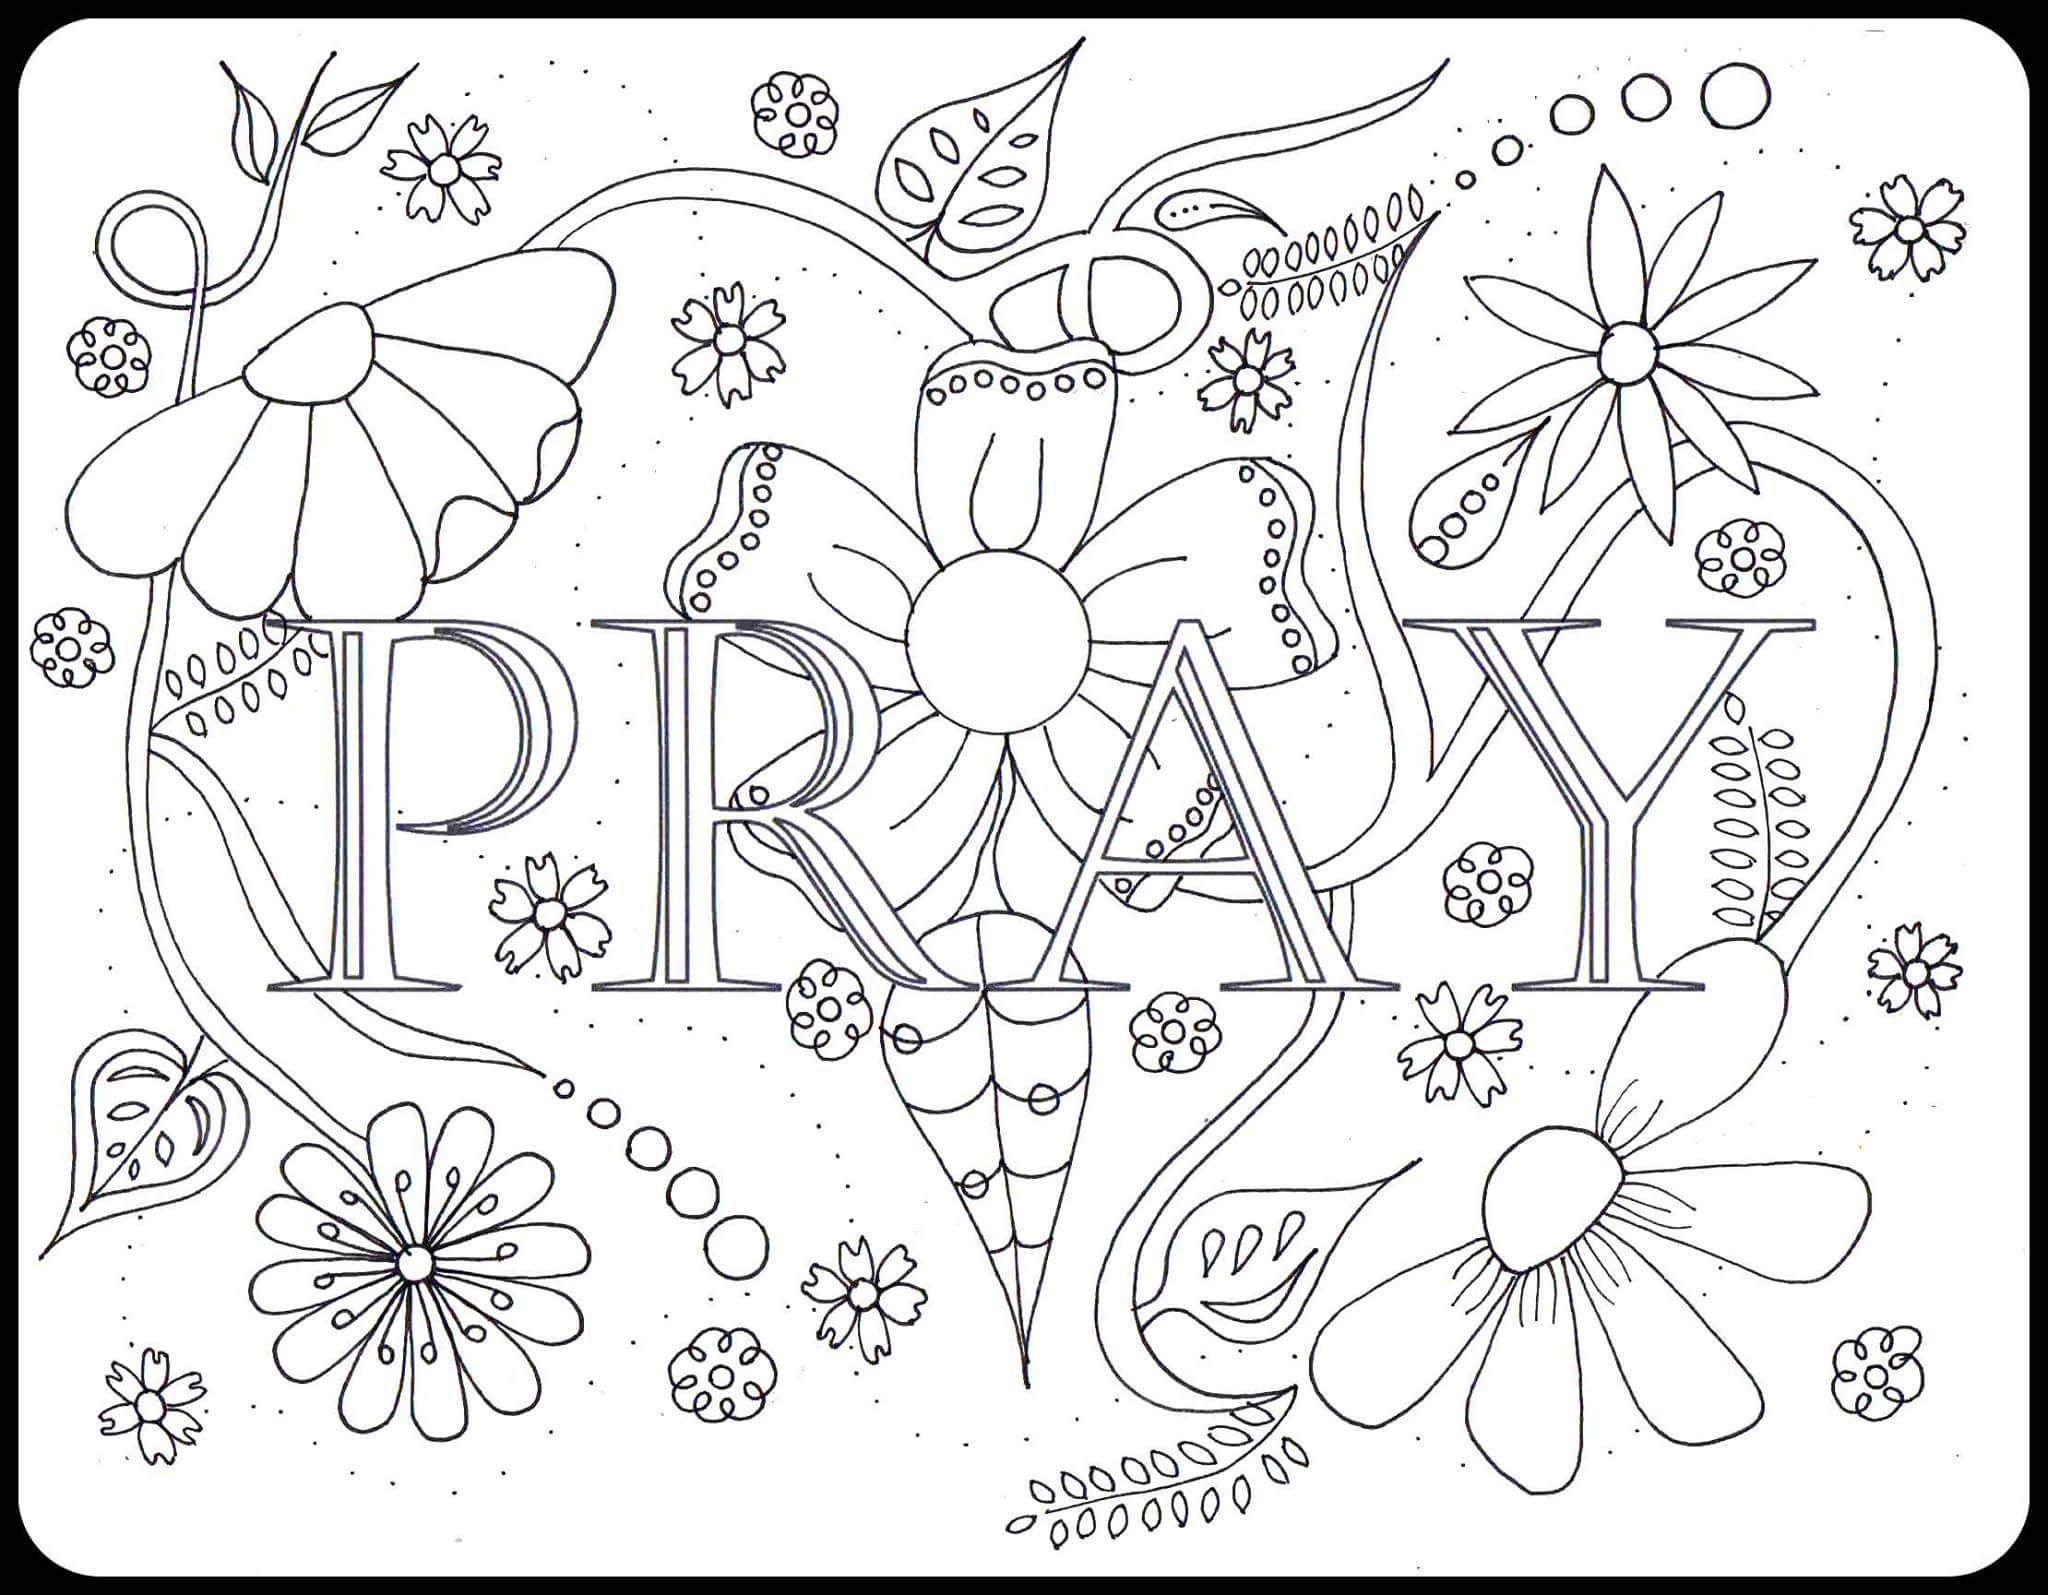 Pin By Joni Thogmartin On Planner Coloring Pages Adult Coloring